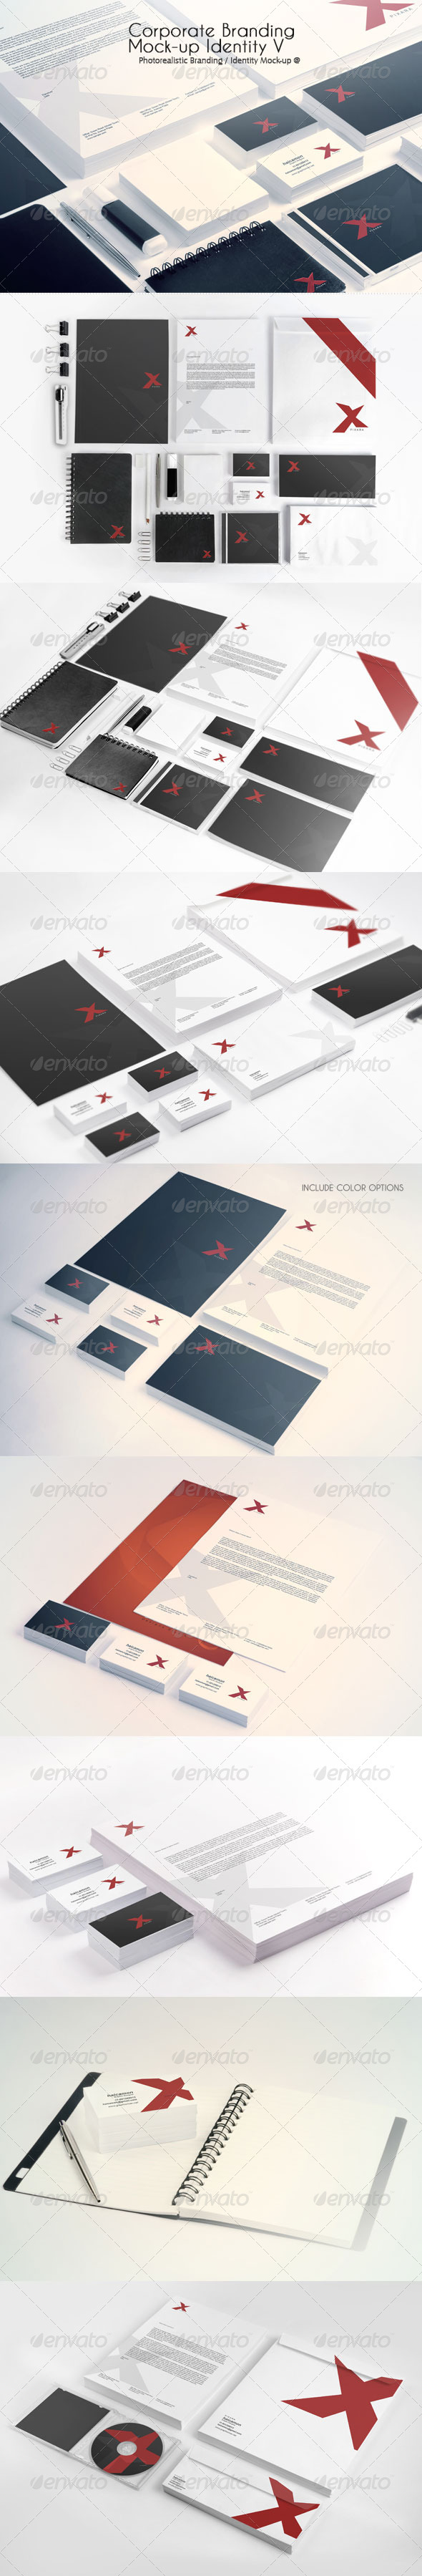 GraphicRiver Corporate Branding Mock-up Identity V 5860944